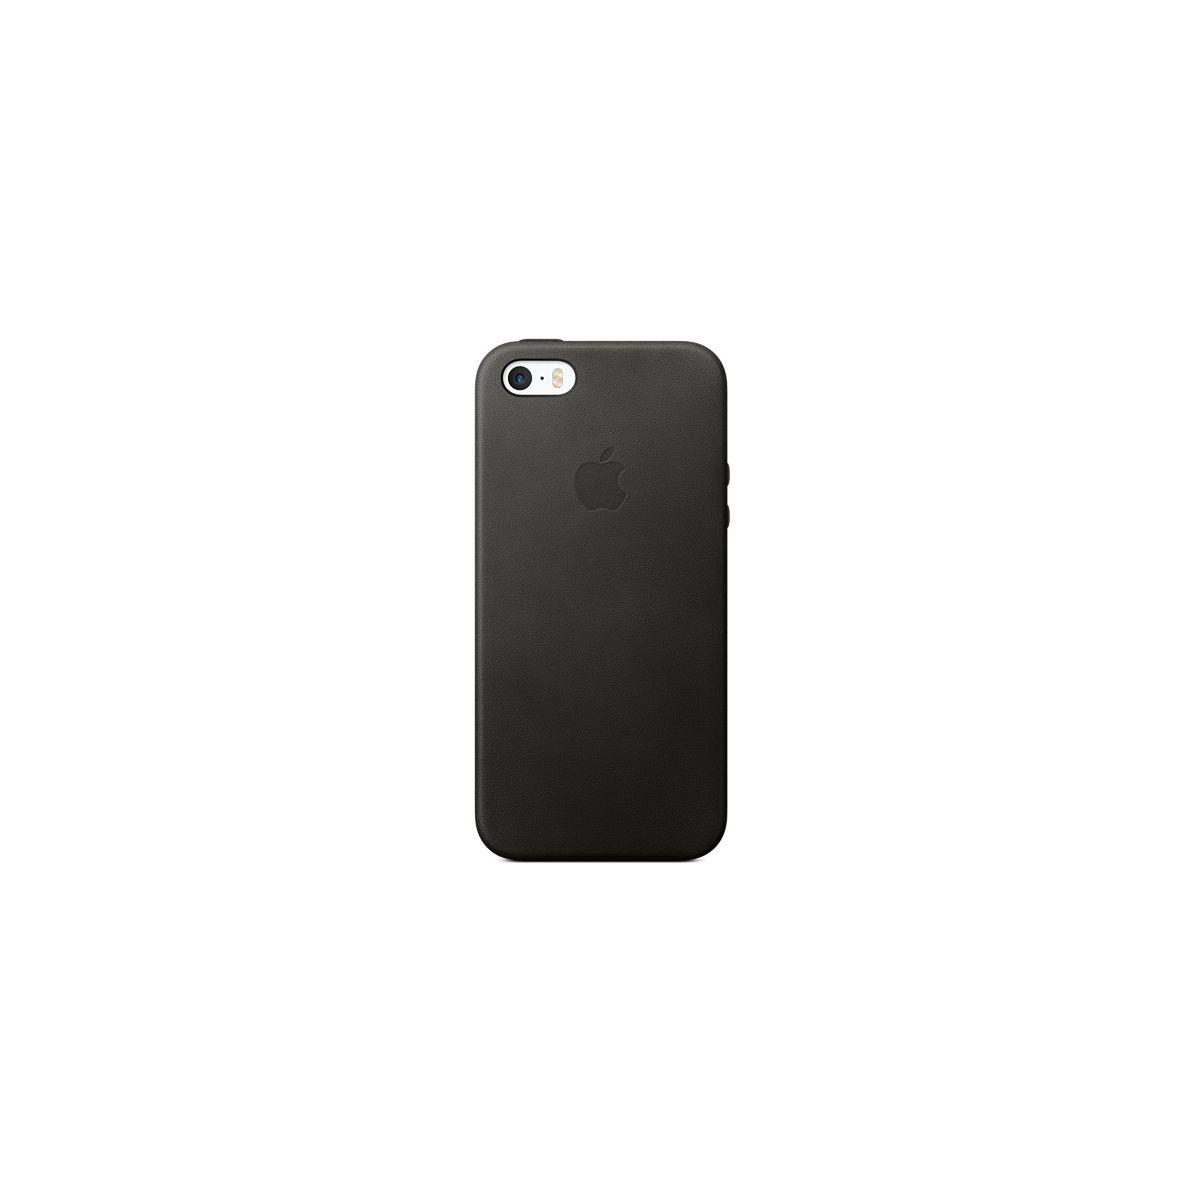 Coque apple cuir noir iphone 5s/se (photo)